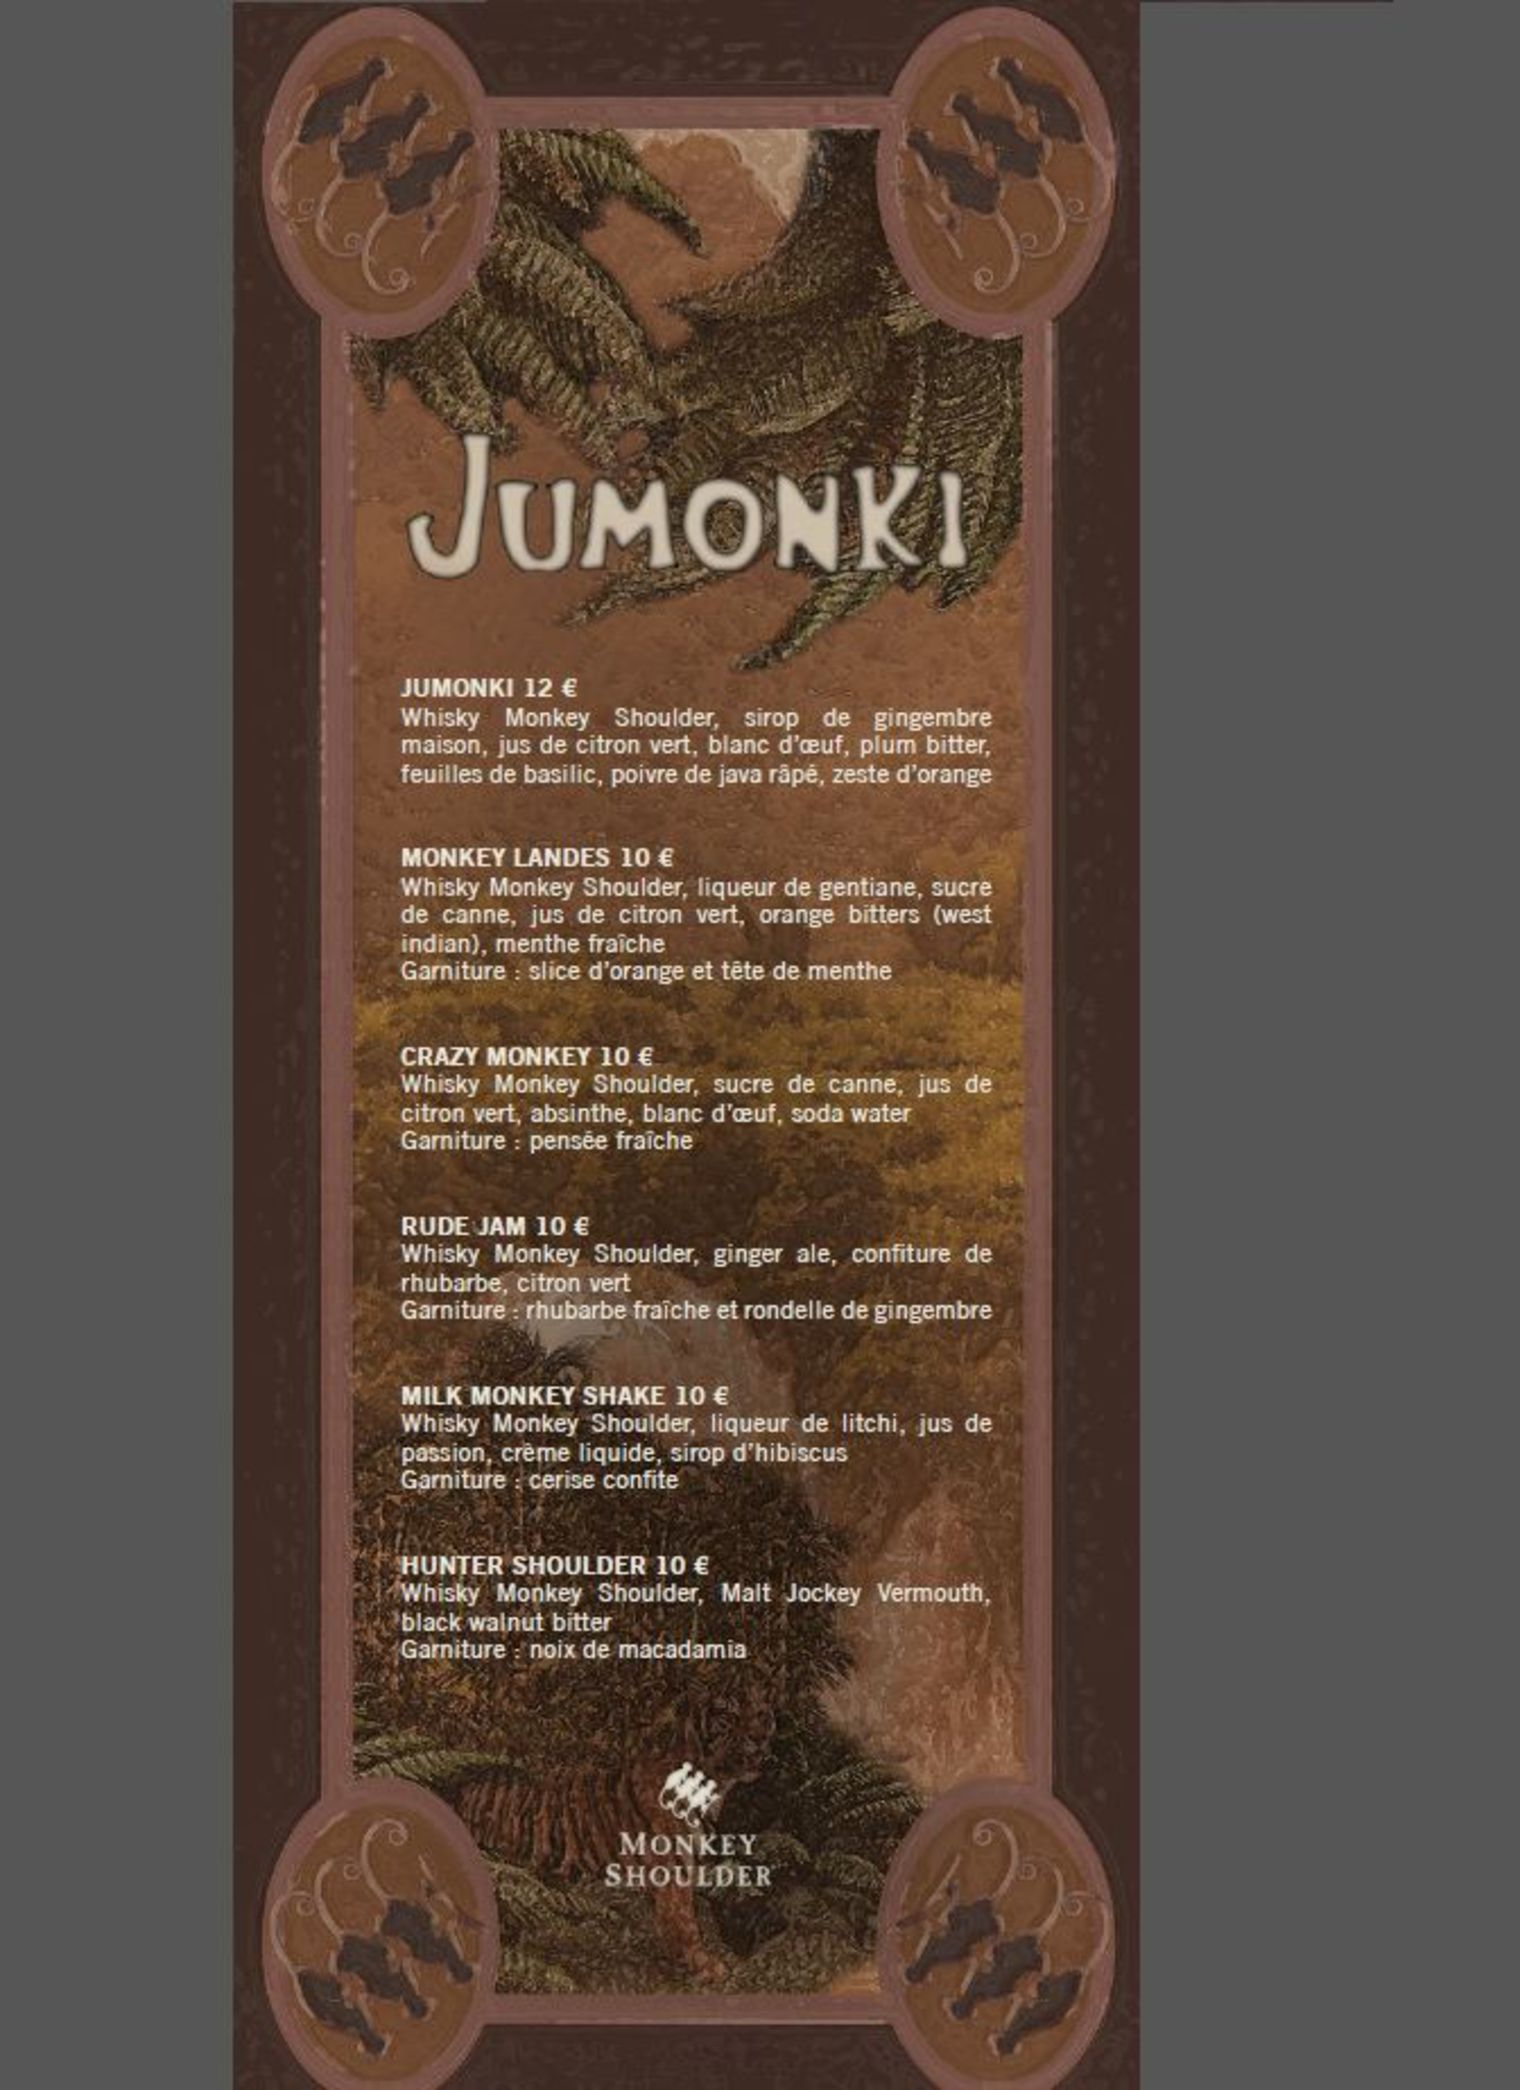 la-carte-du-jumonki-bar-propose-six-cocktails-originaux_5736009